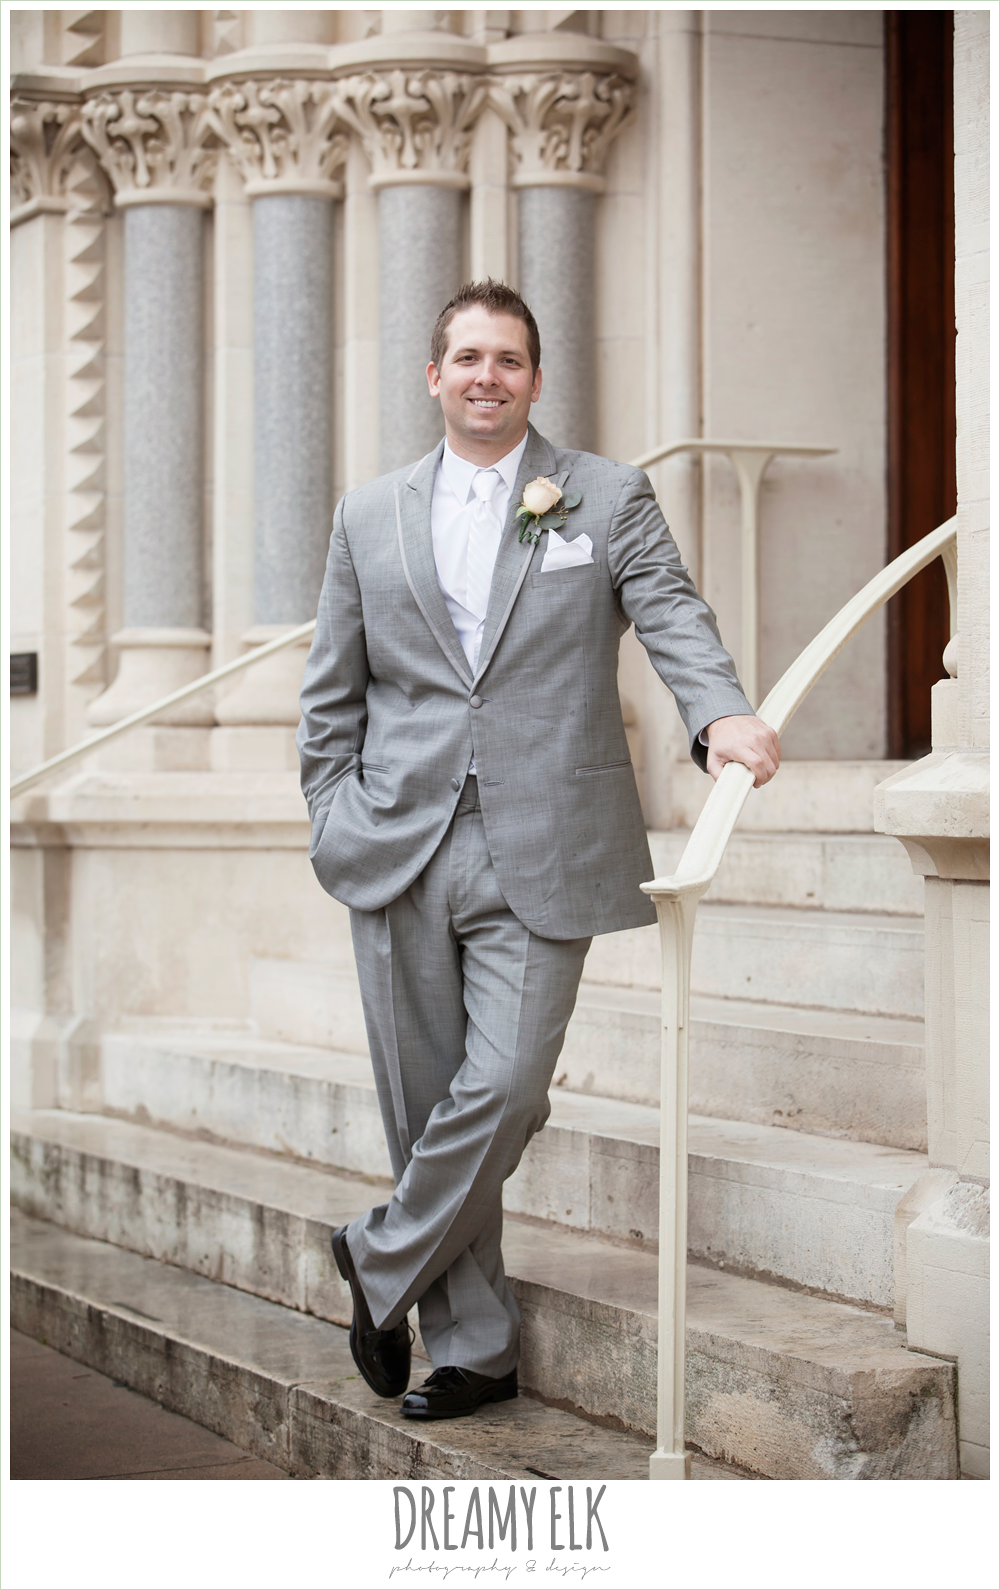 groom in gray suit, downtown austin wedding {dreamy elk photography and design}